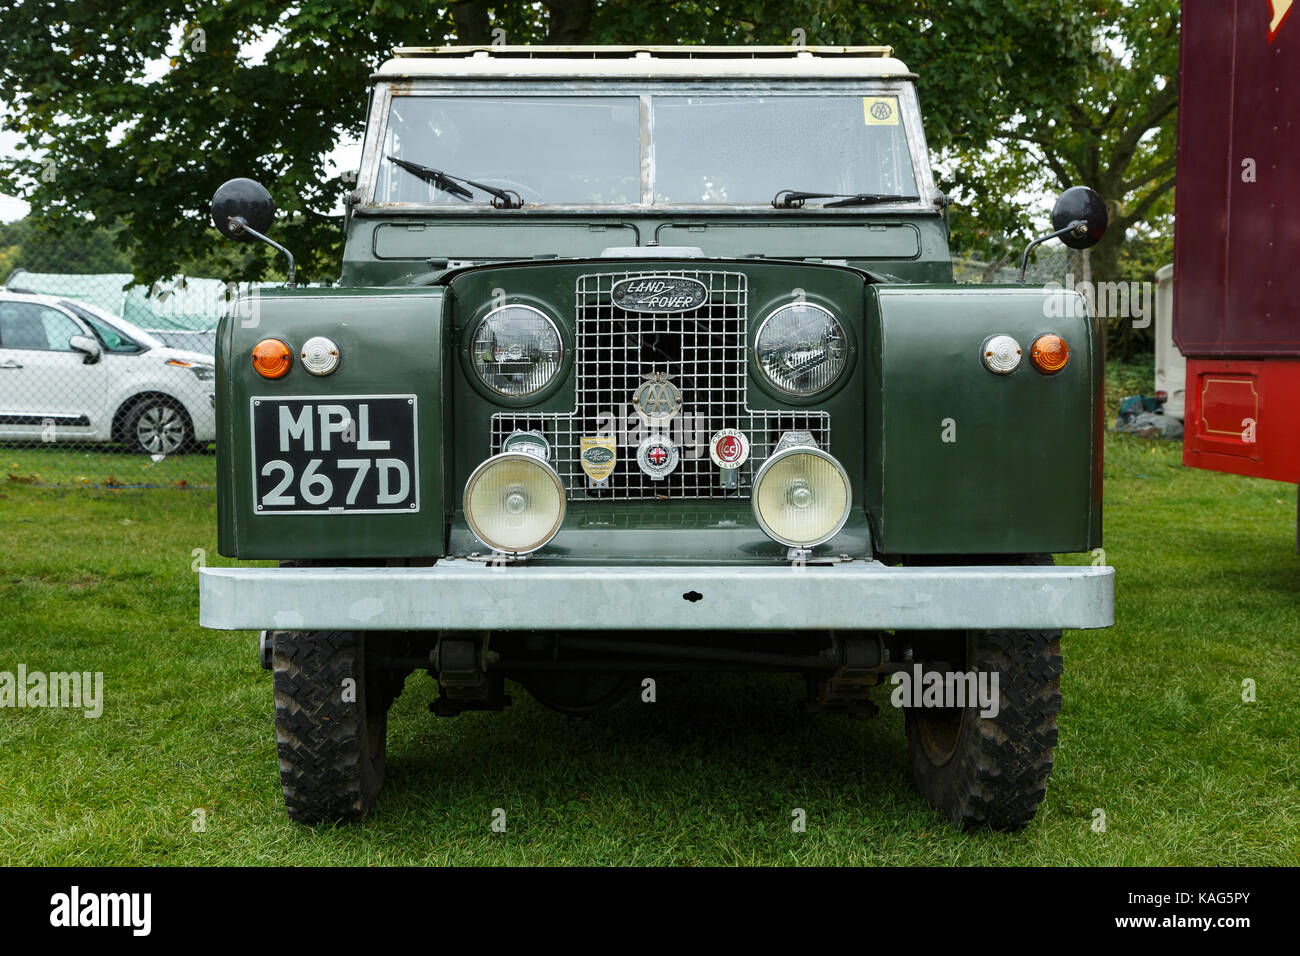 Series 1 Land Rover at the Three Counties Show in Malvern - Stock Image